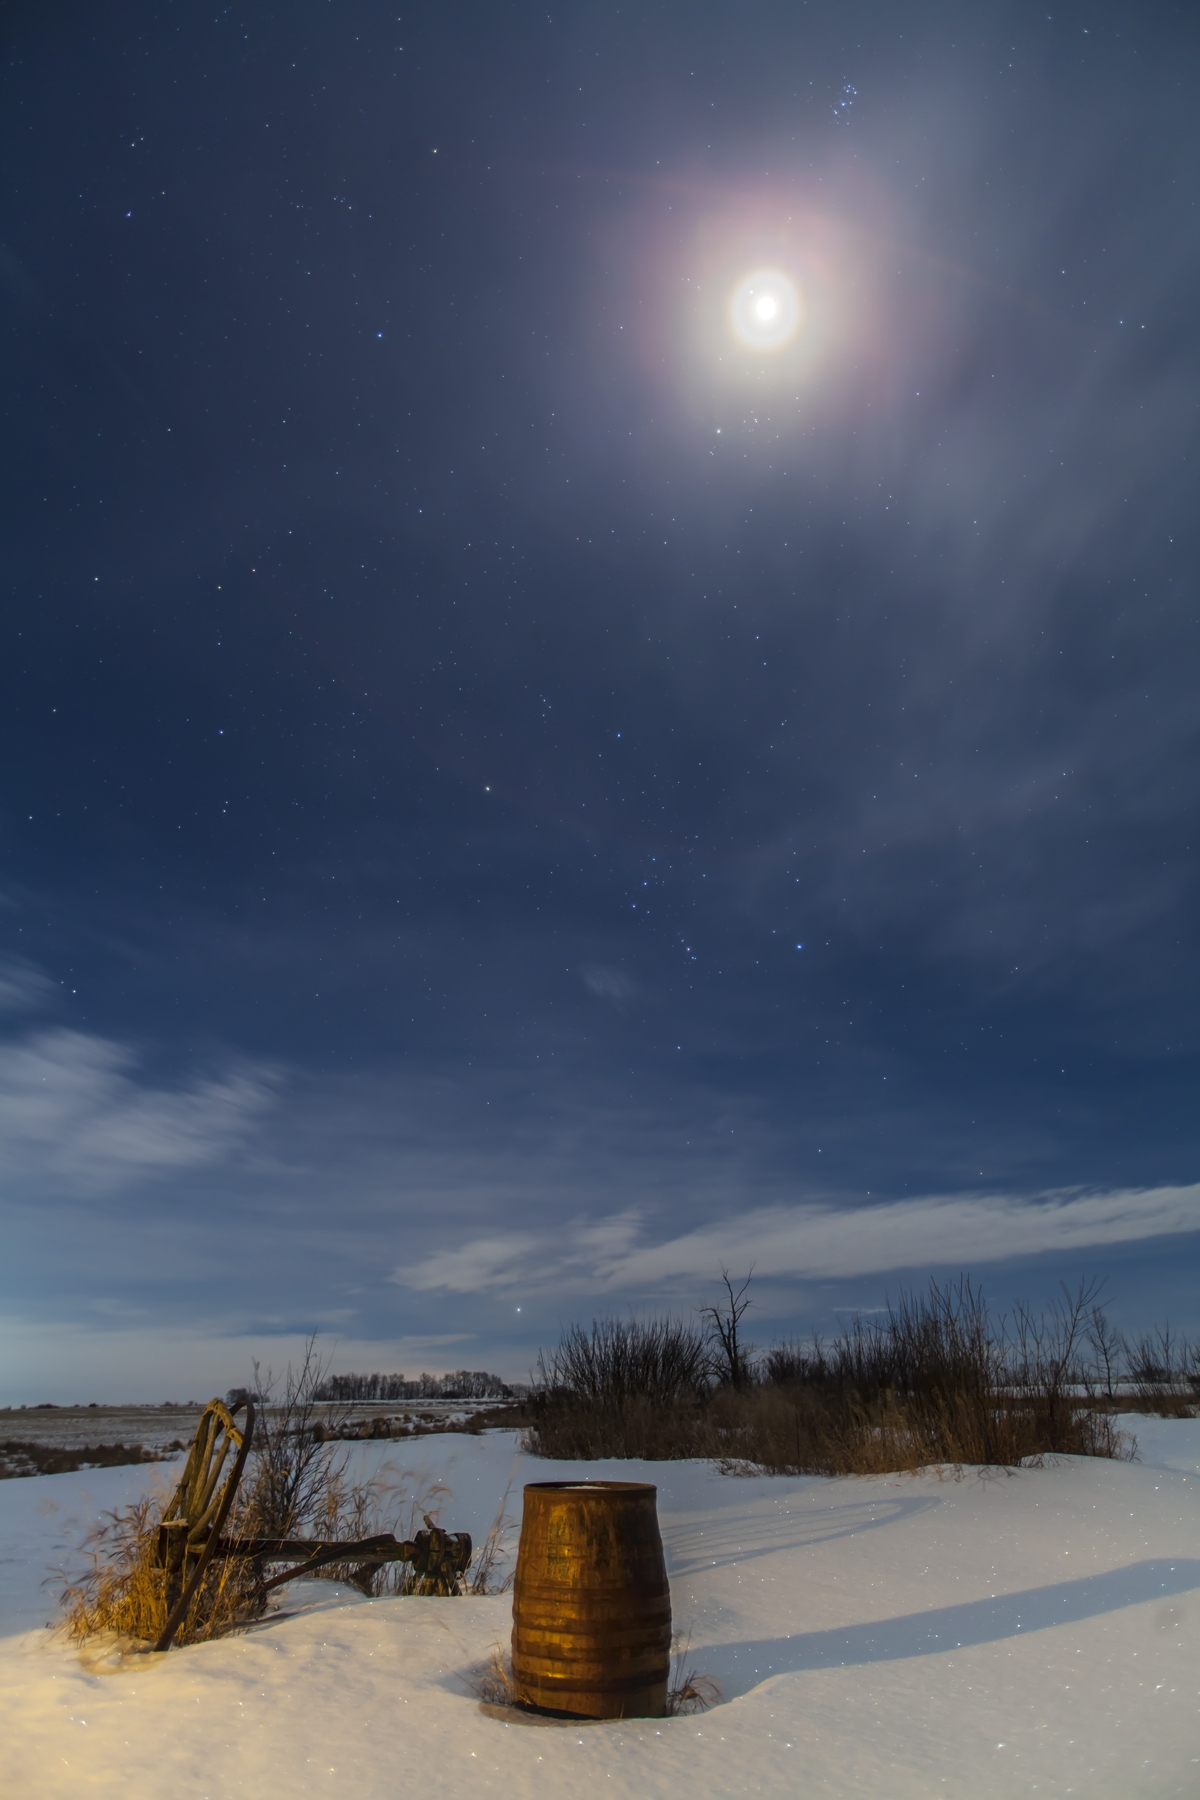 The Moon near Jupiter in the Winter Sky, January 21, 2013